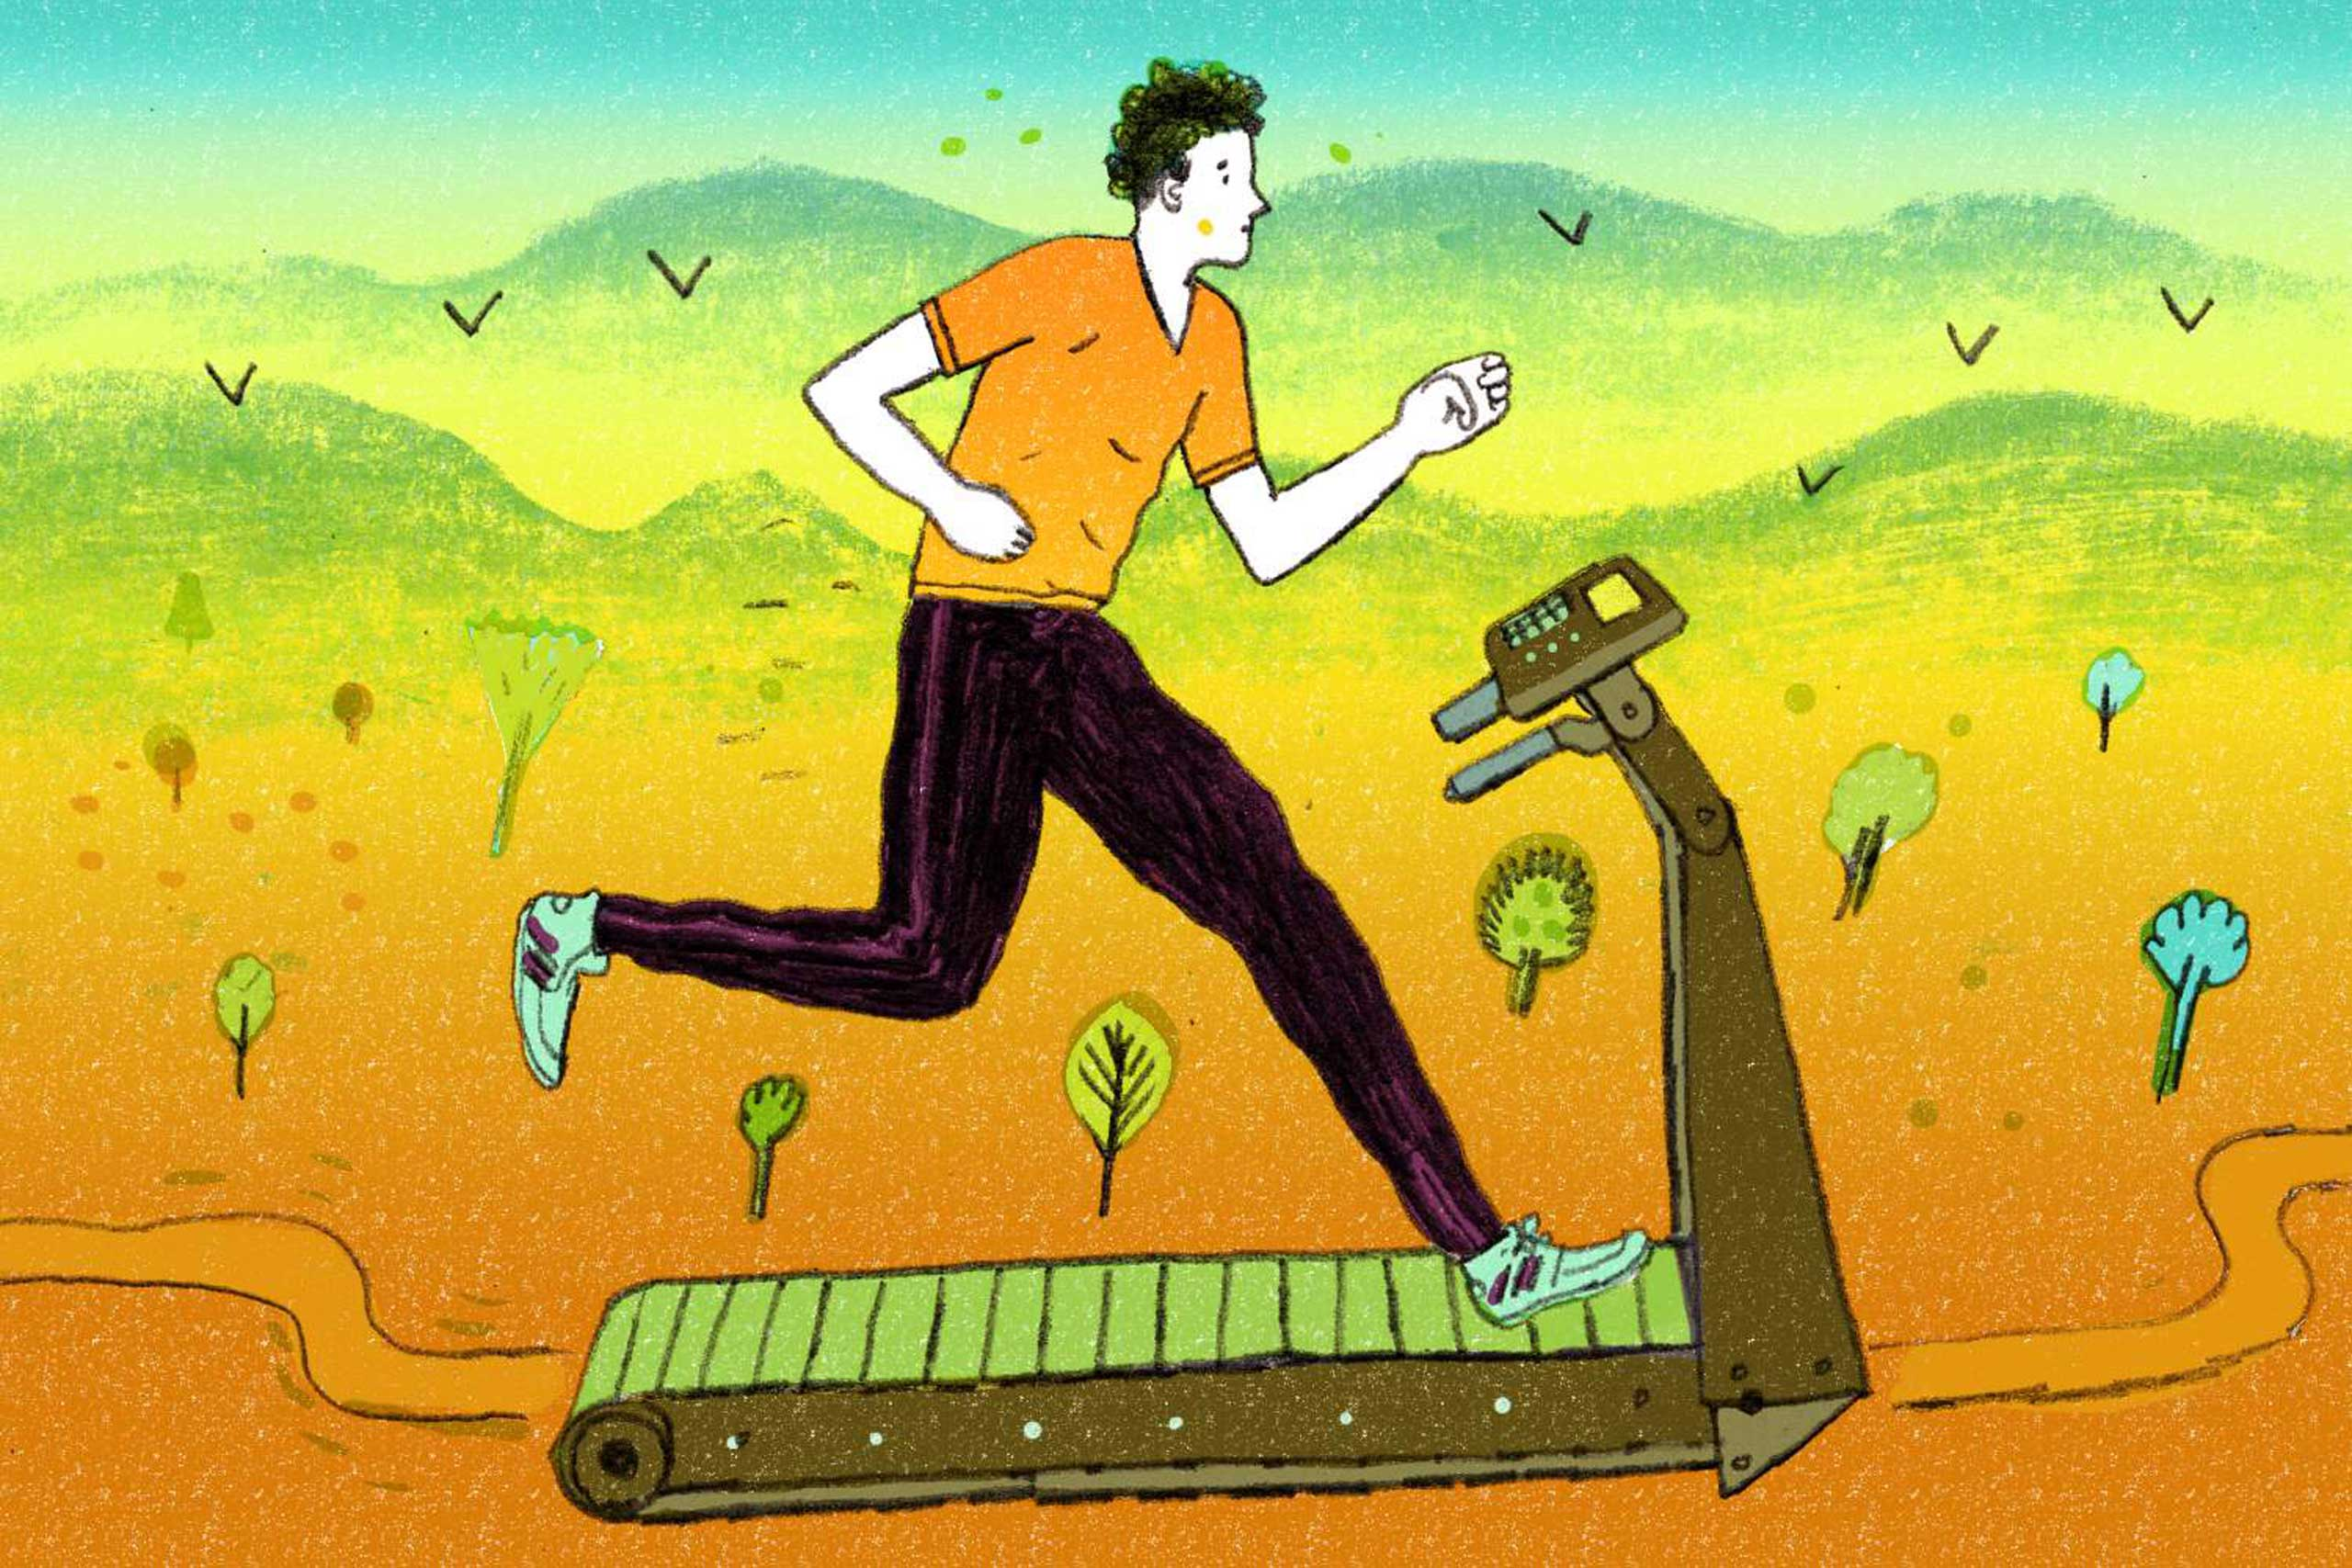 "<strong><a href=""http://time.com/3578343/exercise-treadmill-running/"" target=""_blank"">You Asked: Is Running on a Treadmill as Good as Running Outside?</a></strong>  You'll fool your body into thinking it's outside with this one small treadmill tweak."